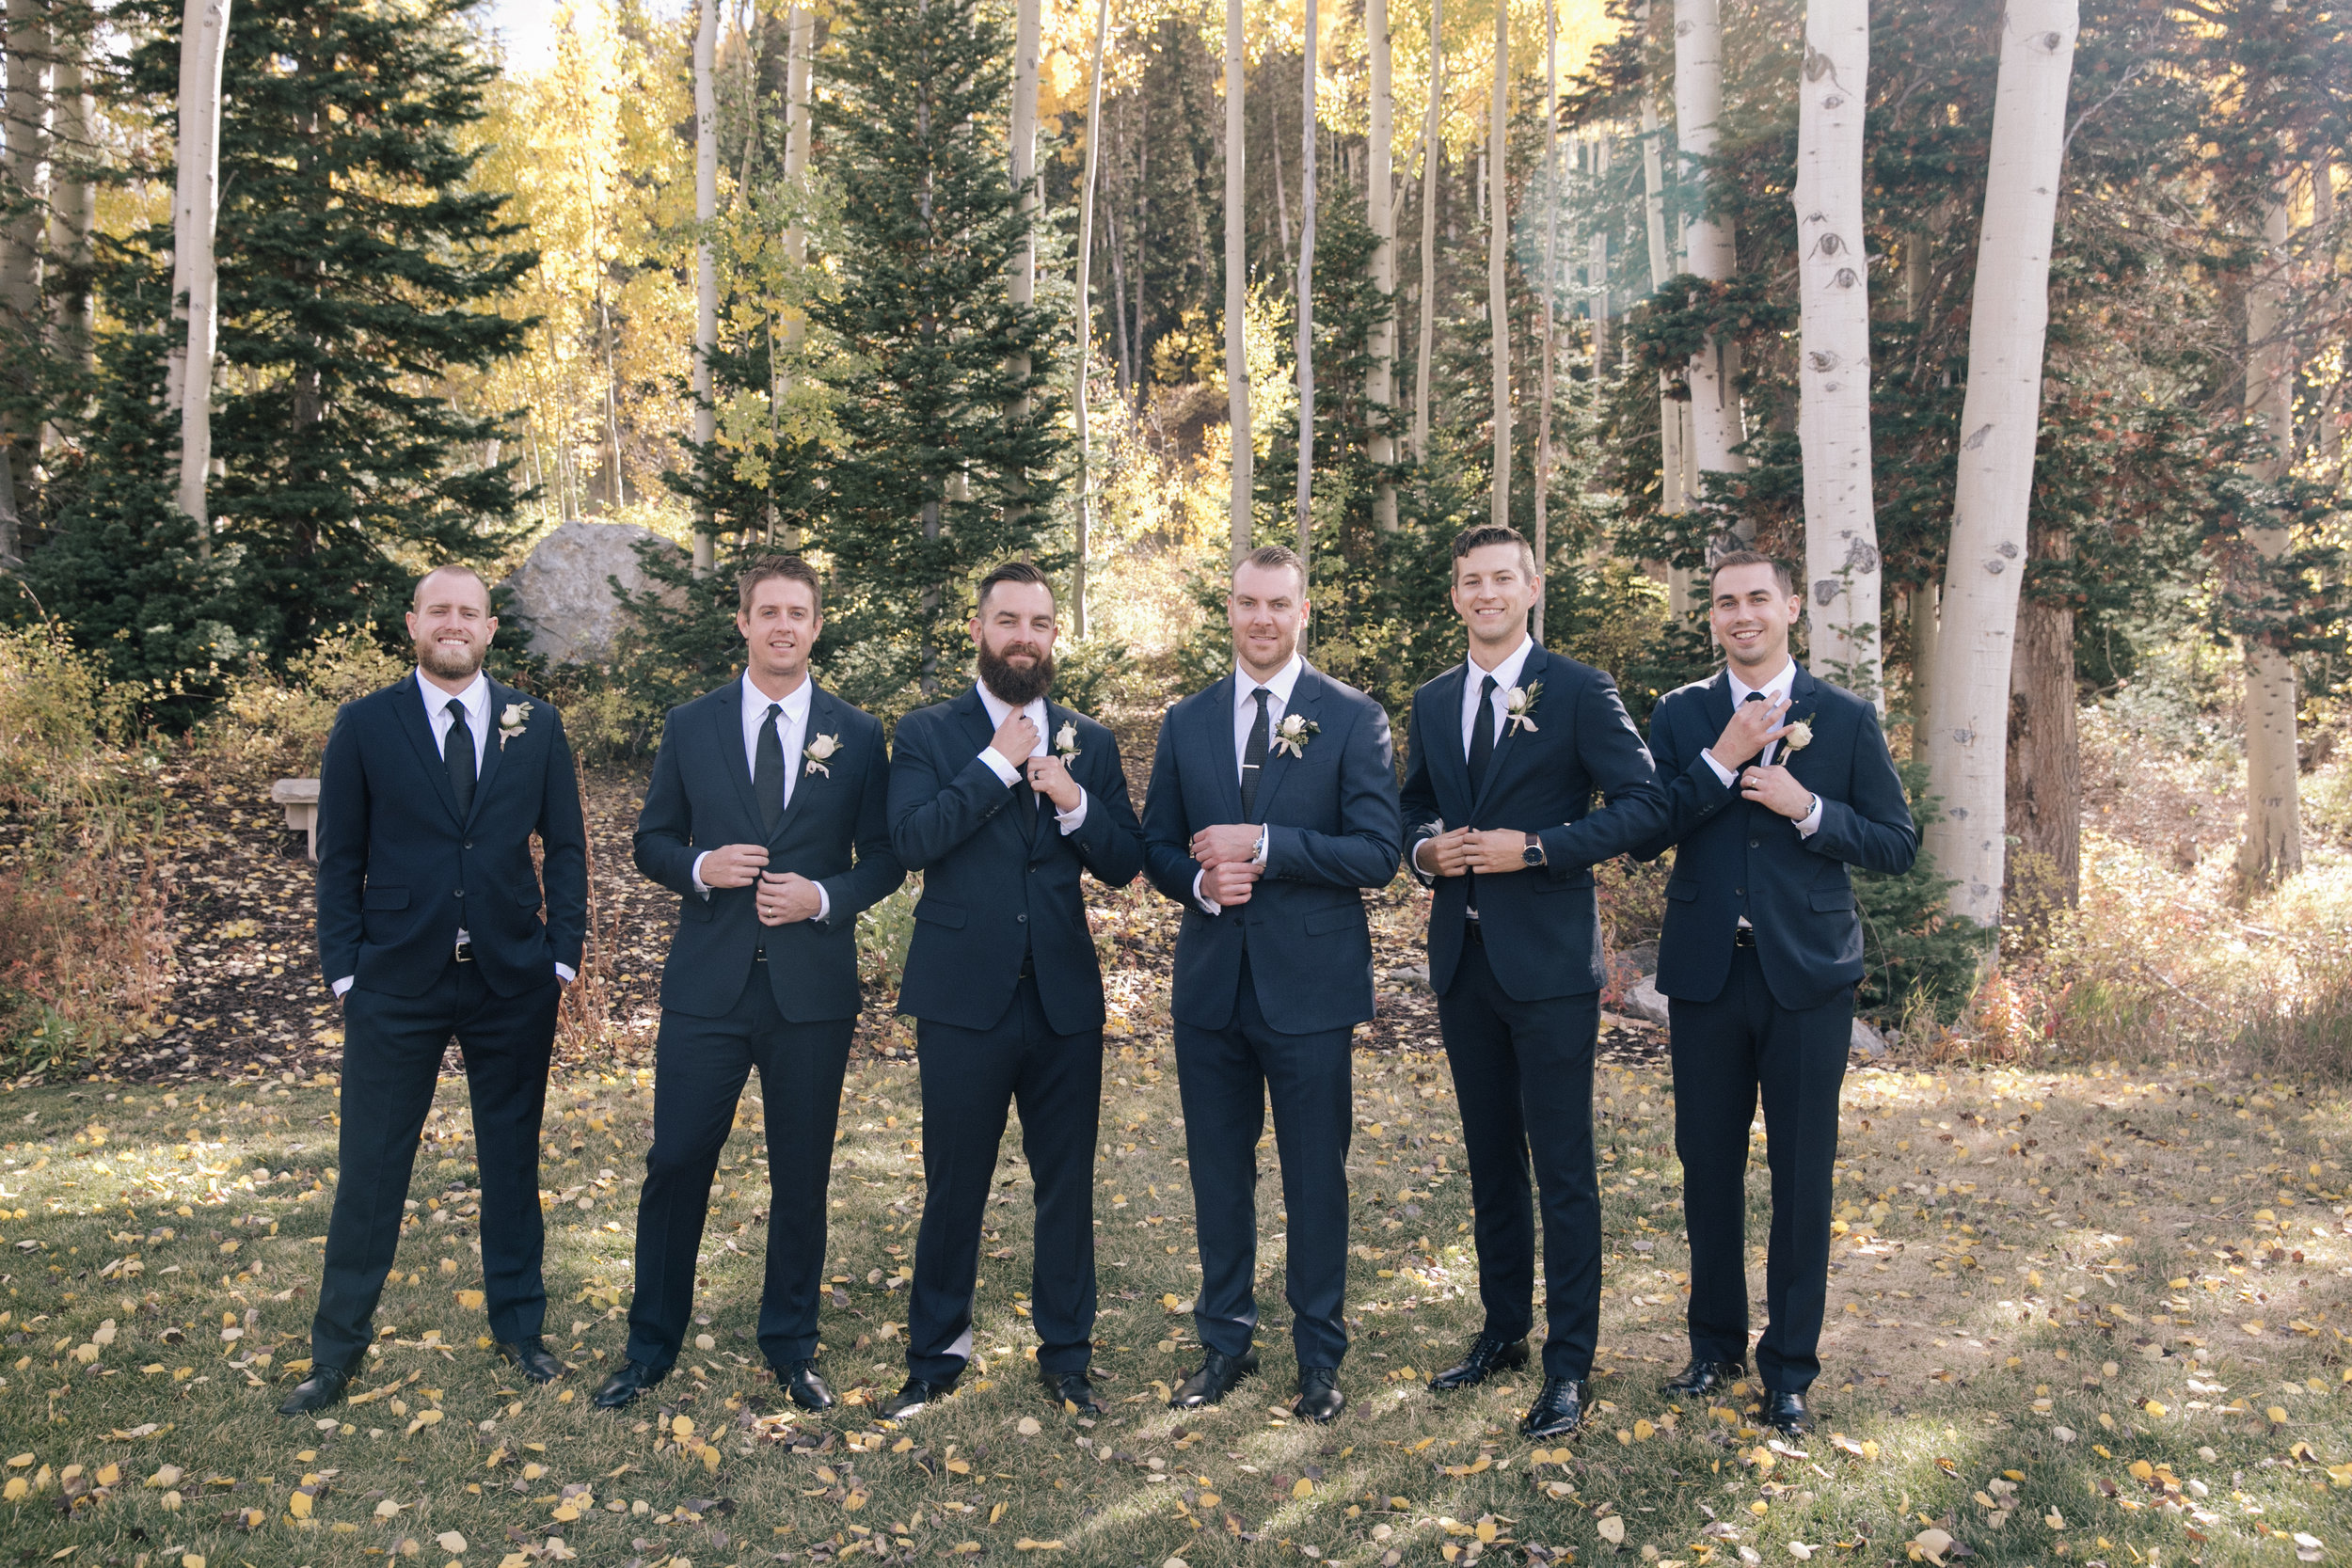 Expectations of the Best Man and Groomsmen   Bachelor Party   Michelle Leo Events   Utah Event Planner and Designer